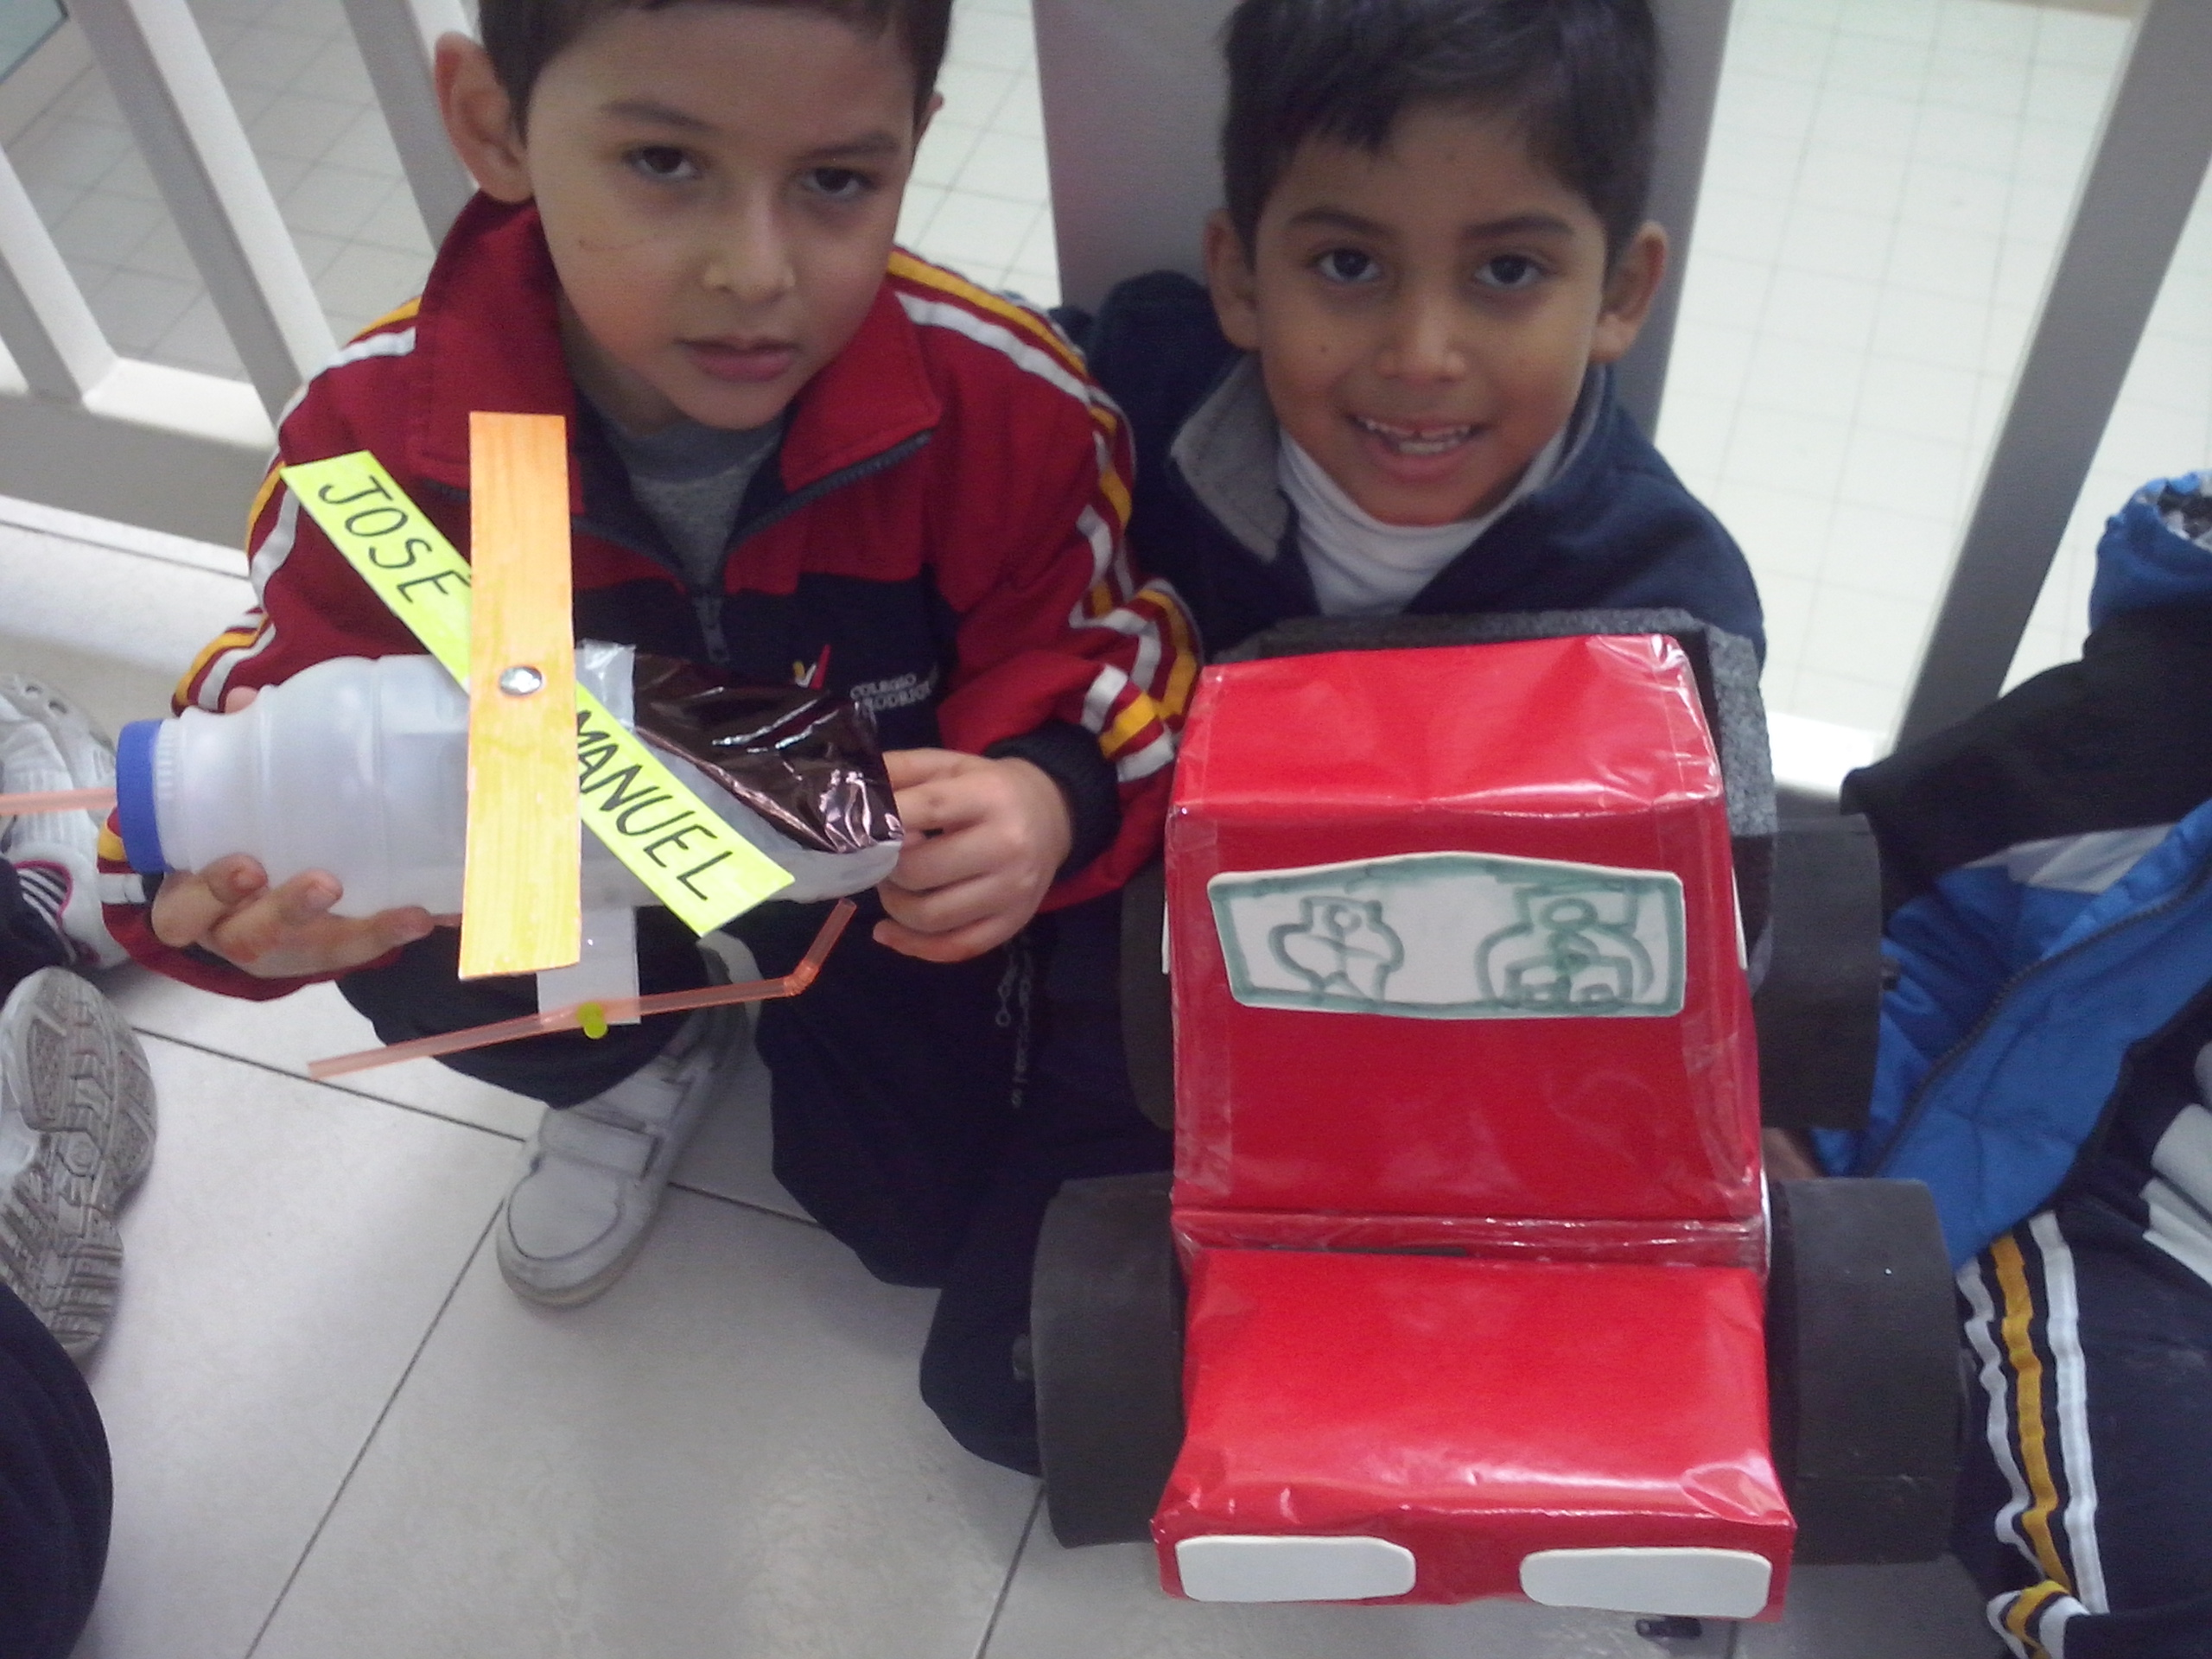 1 ST GRADE PROJECT MAKING TOYS 2014 -CAMPUS LA FE